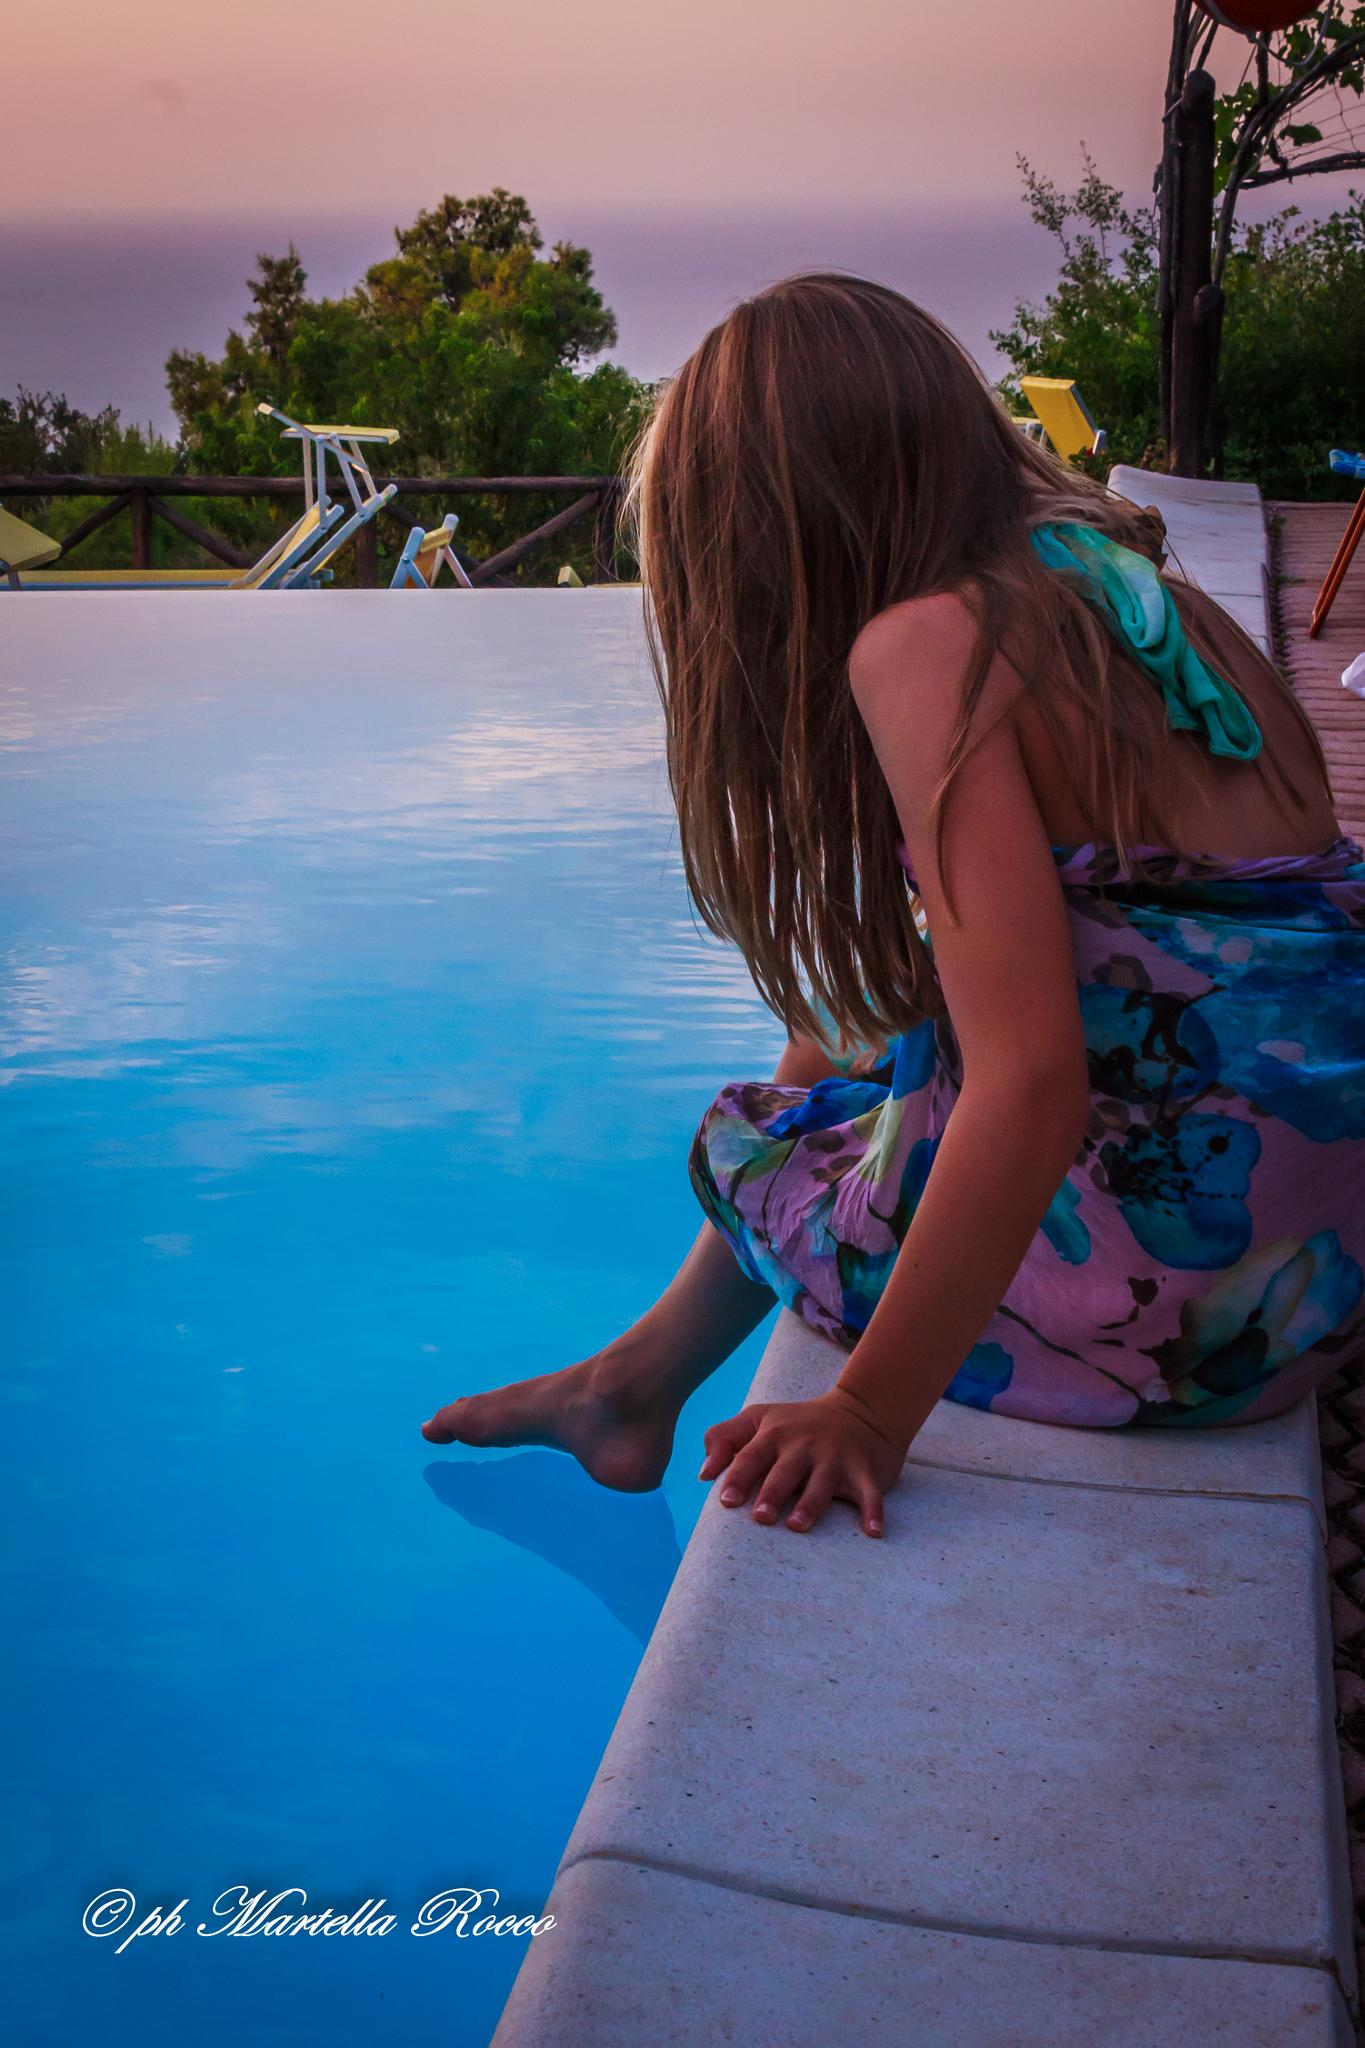 waiting for the sunset on the pool by PhotoM.R.60D